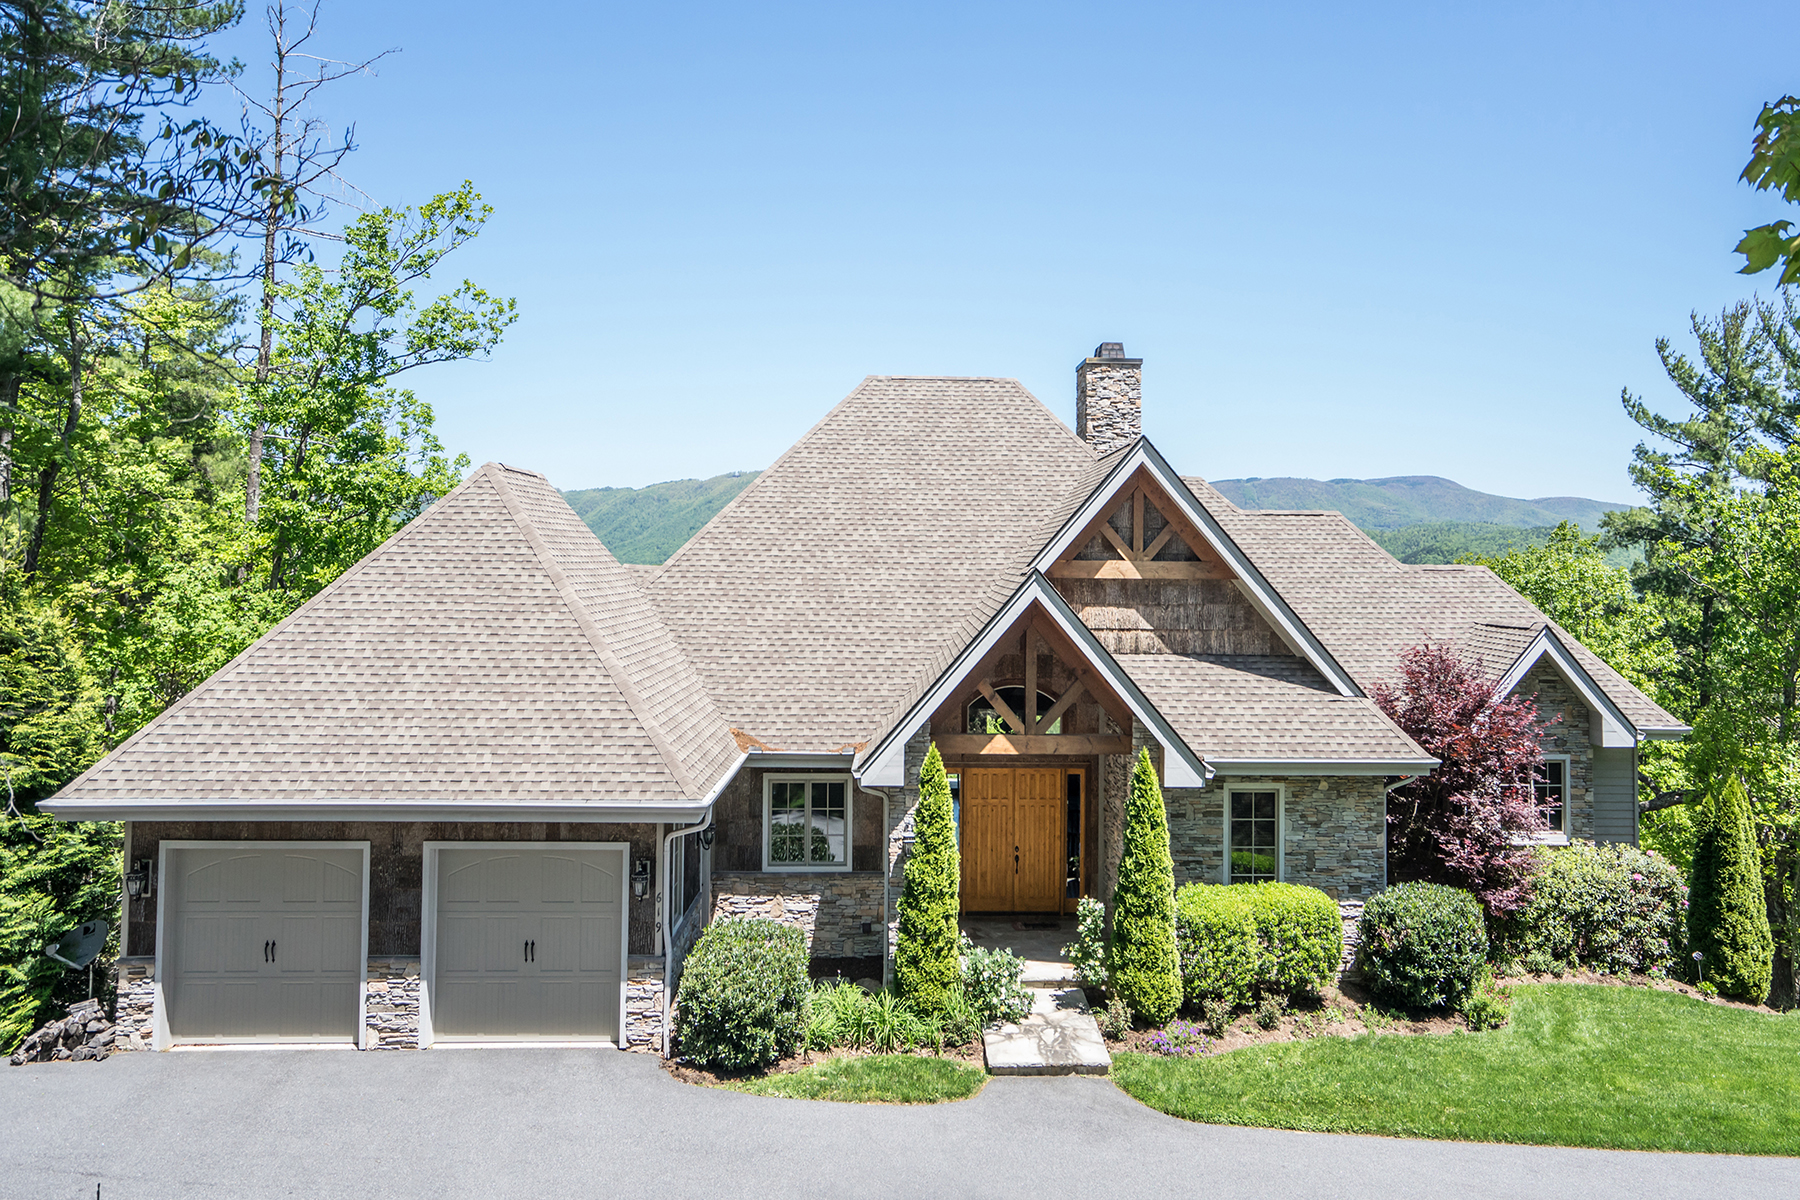 Single Family Home for Sale at Boone 619 Red Cedar Rd Boone, North Carolina, 28607 United States